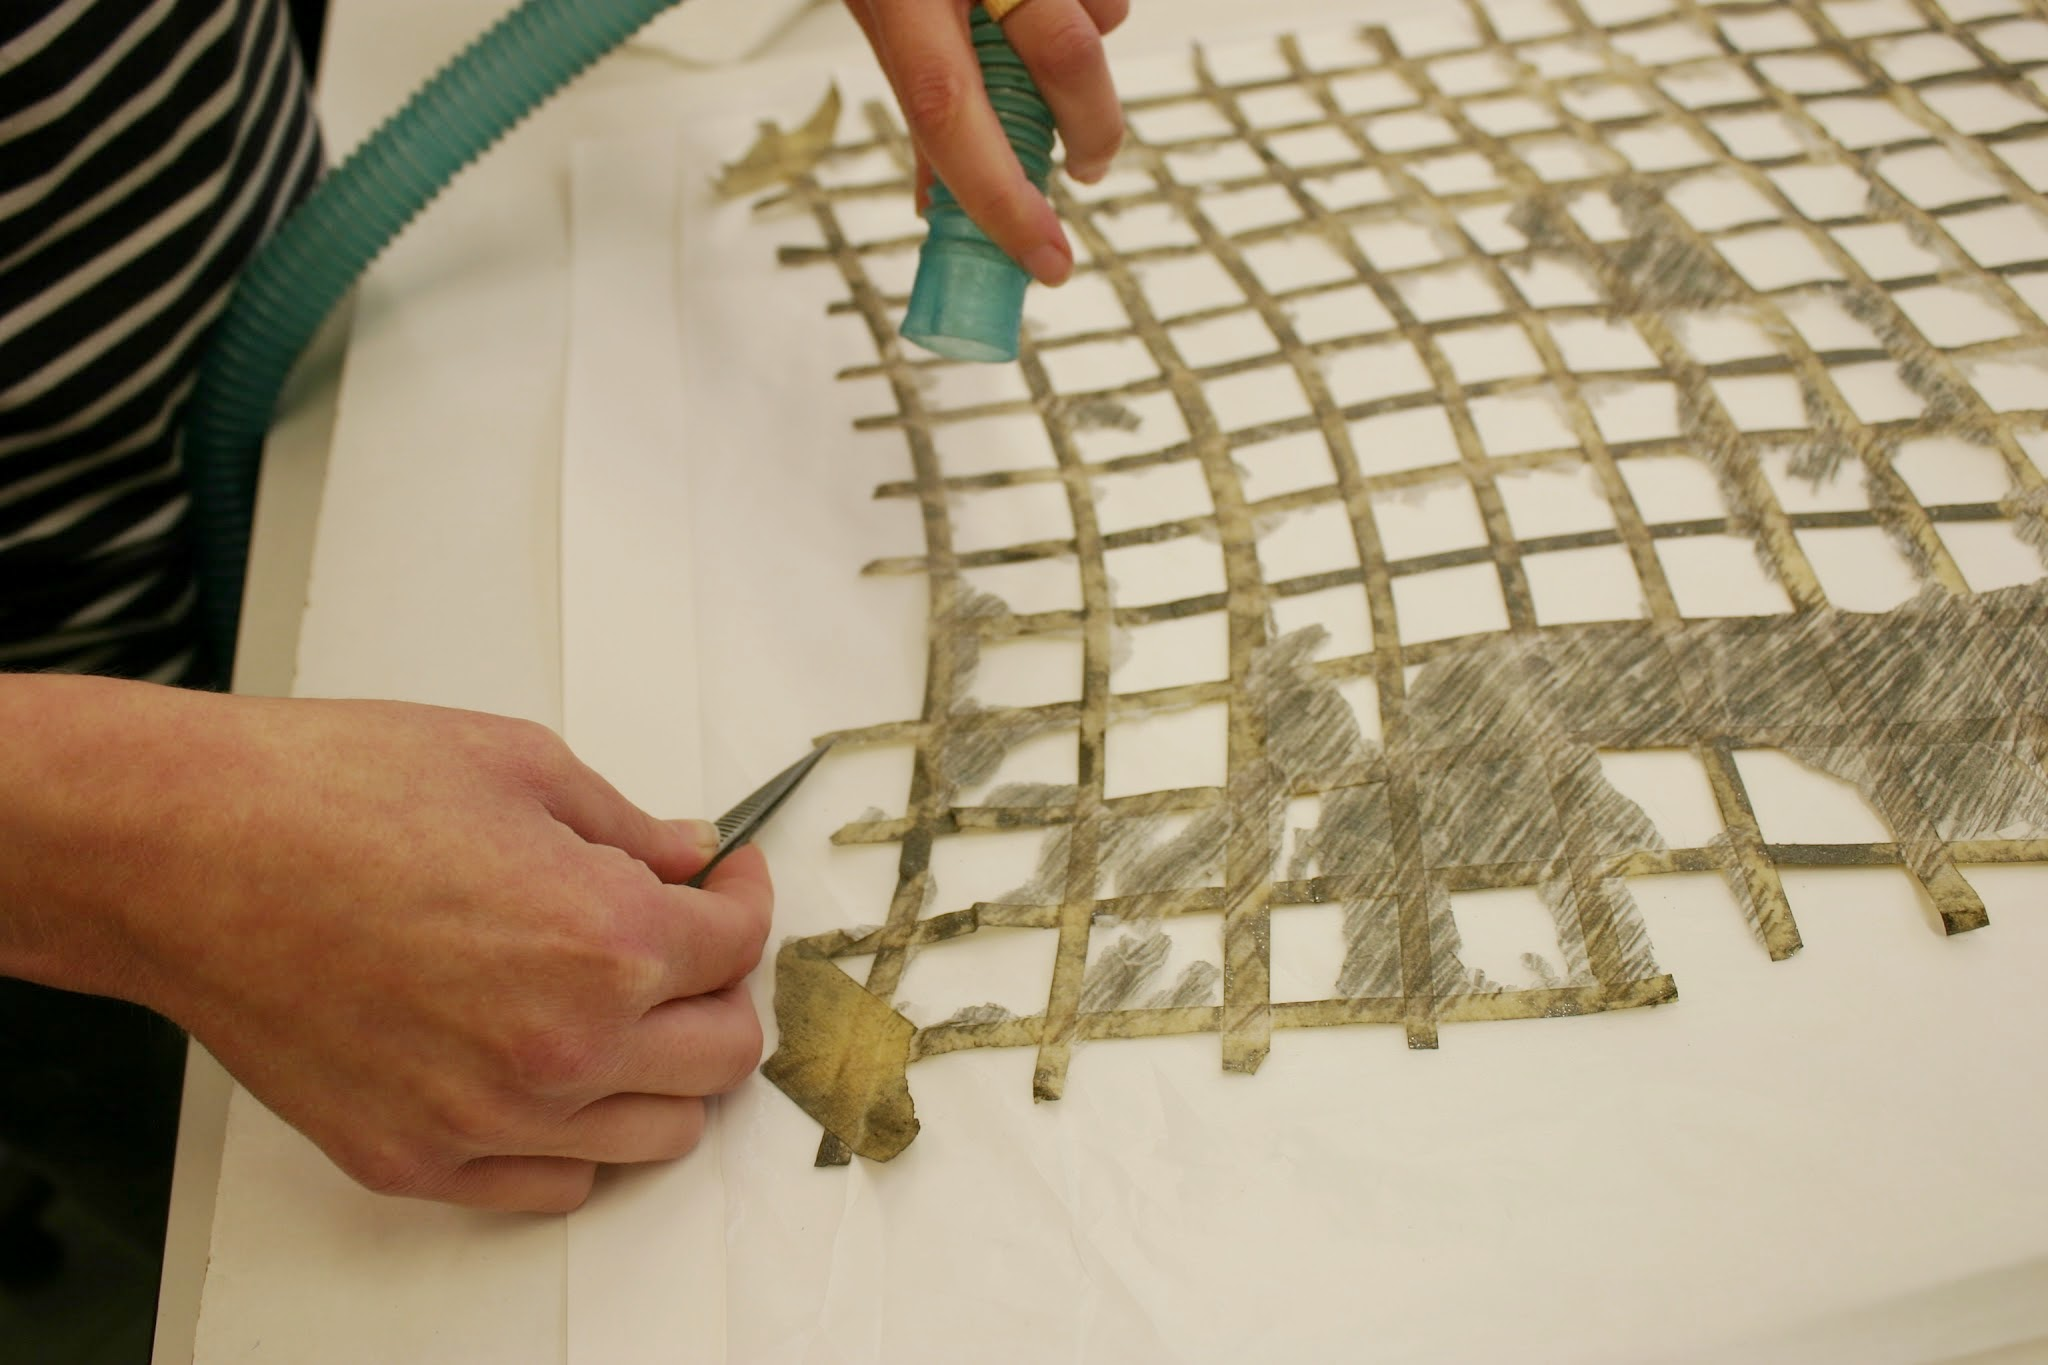 Humidification and flattening of creased masking tape and paper elements on the tape grid before reattachment.